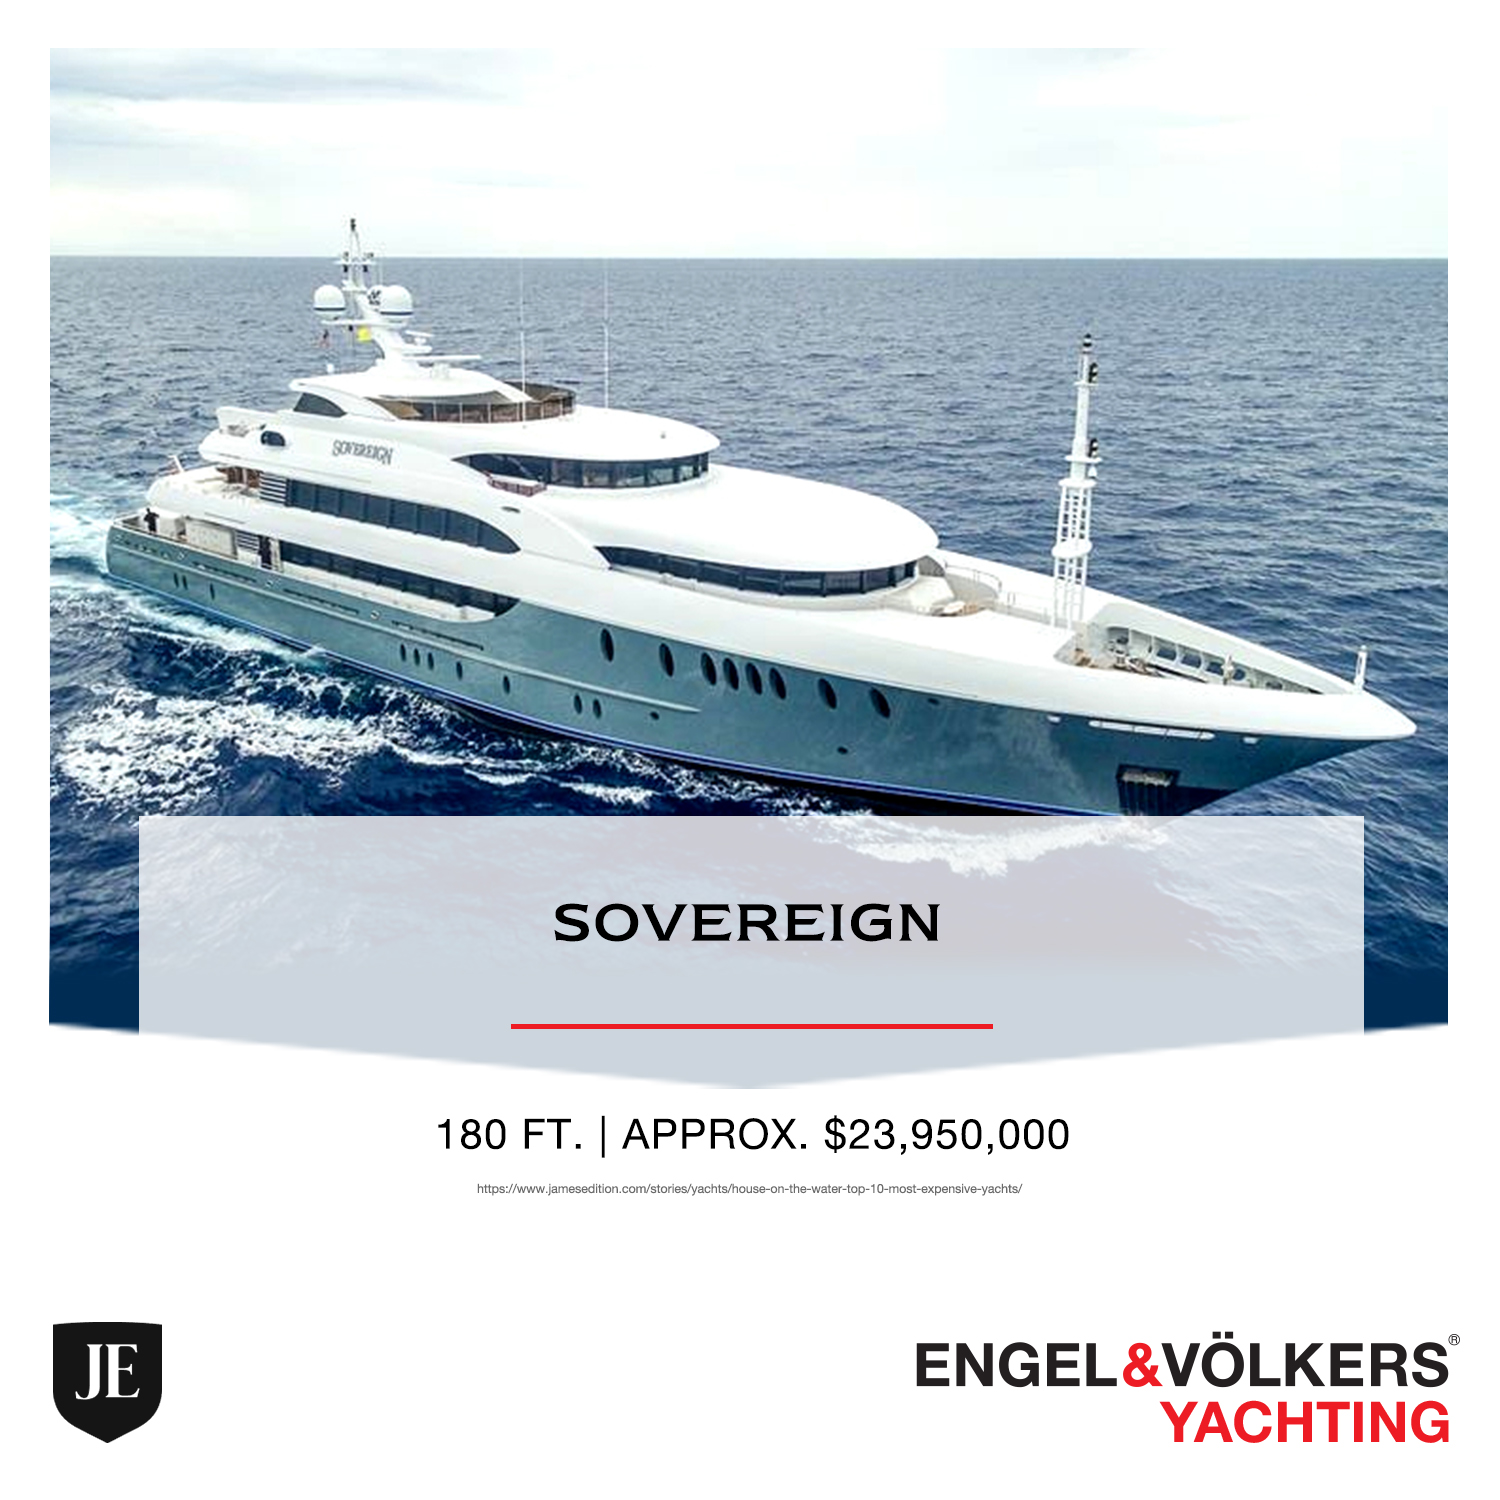 Sovereign BATEAU ENGEL & VOLKERS YACHTING